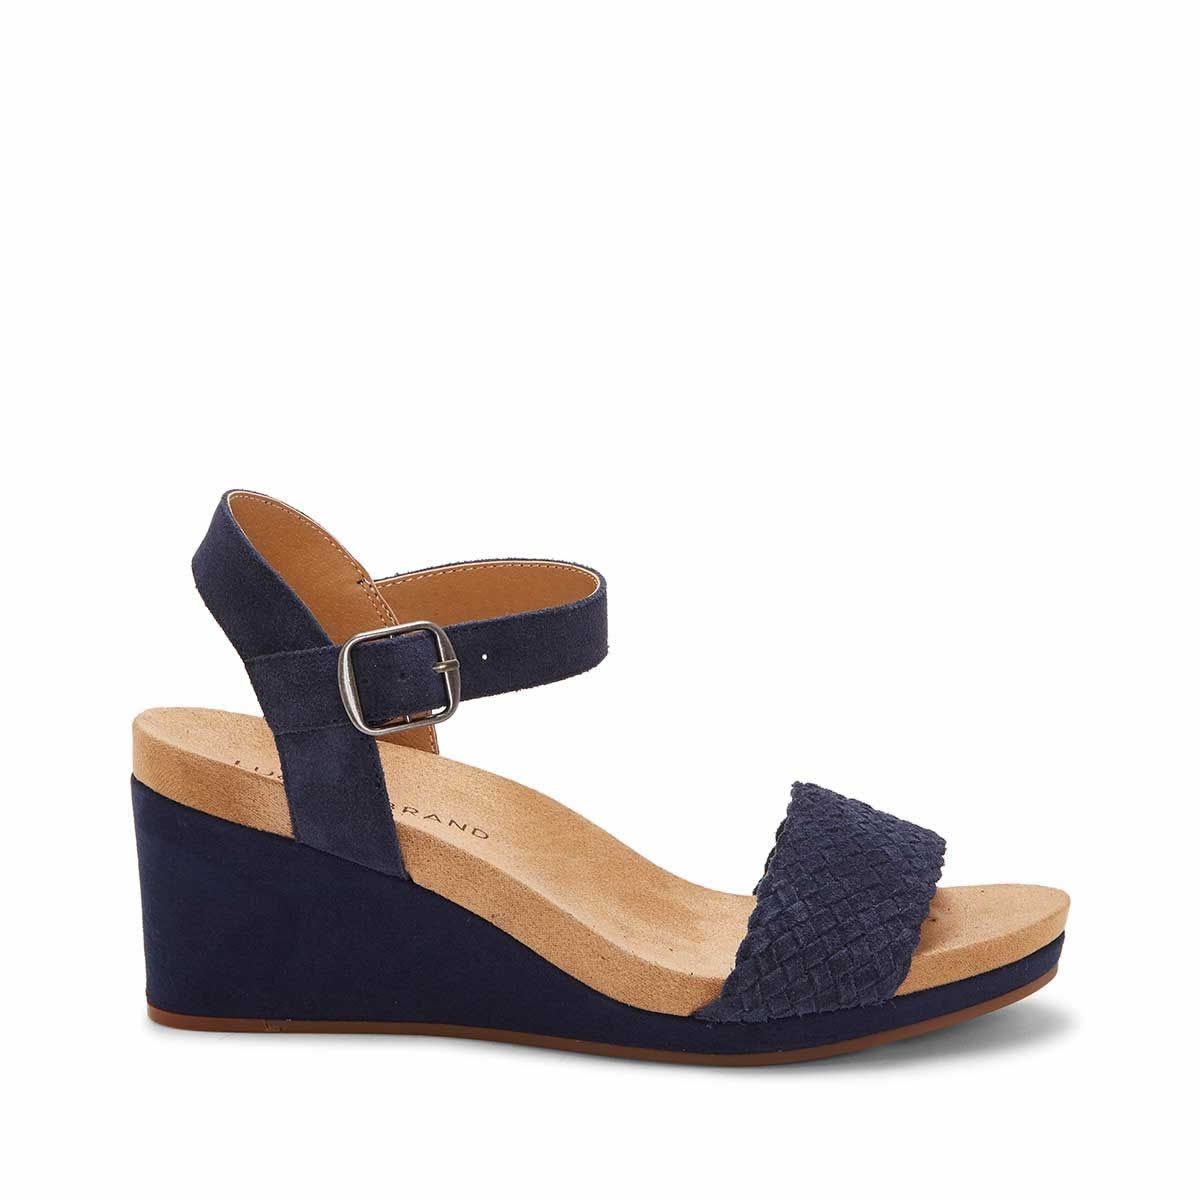 5b58e01ed0f4 Lucky Brand Shoes - Macy s